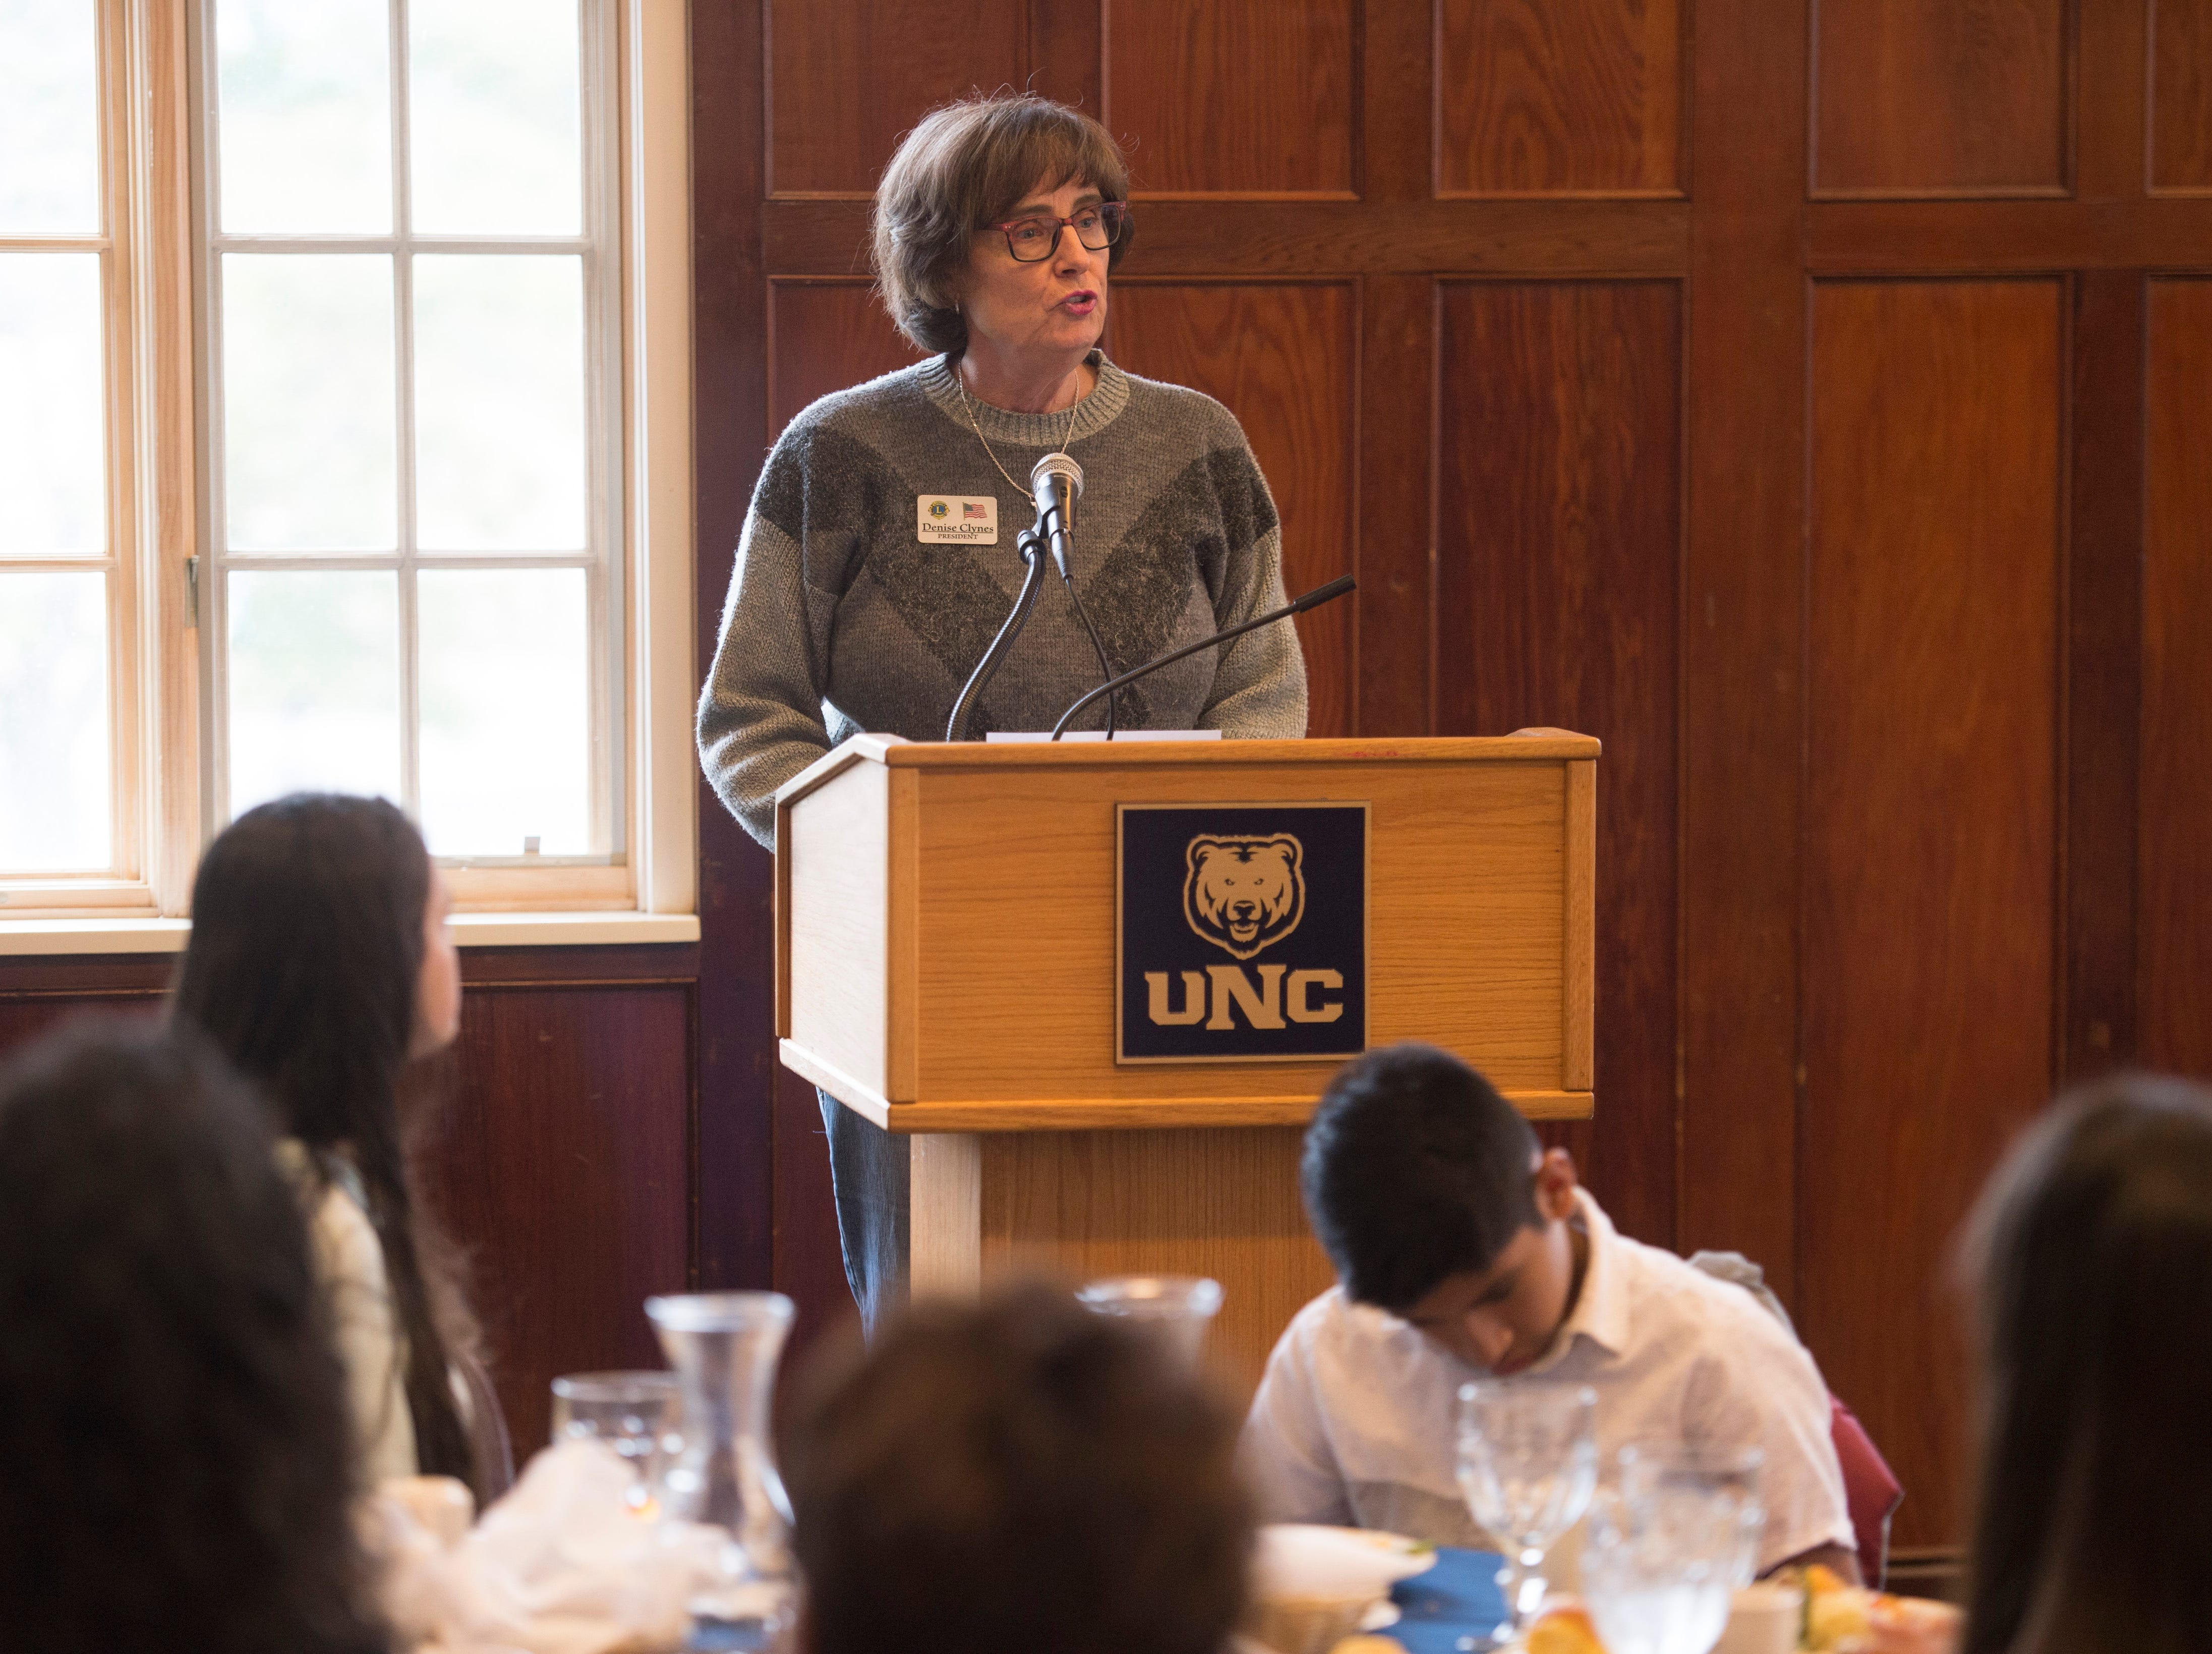 Denise Clynes, President of the Fort Collins Lions Club International, speaks during the Coloradoan's First Class banquet at the University of Northern Colorado in Greeley on Saturday, October 6, 2018. First Class is a program that supports first-generation students in Northern Colorado. The program is now in its third year and is a partnership between The Coloradoan and Aims Community College, Fort Collins Lions Club, Front Range Community College, Colorado State University, Canvas Credit Union (formerly Public Service Credit Union) and University of Northern Colorado.